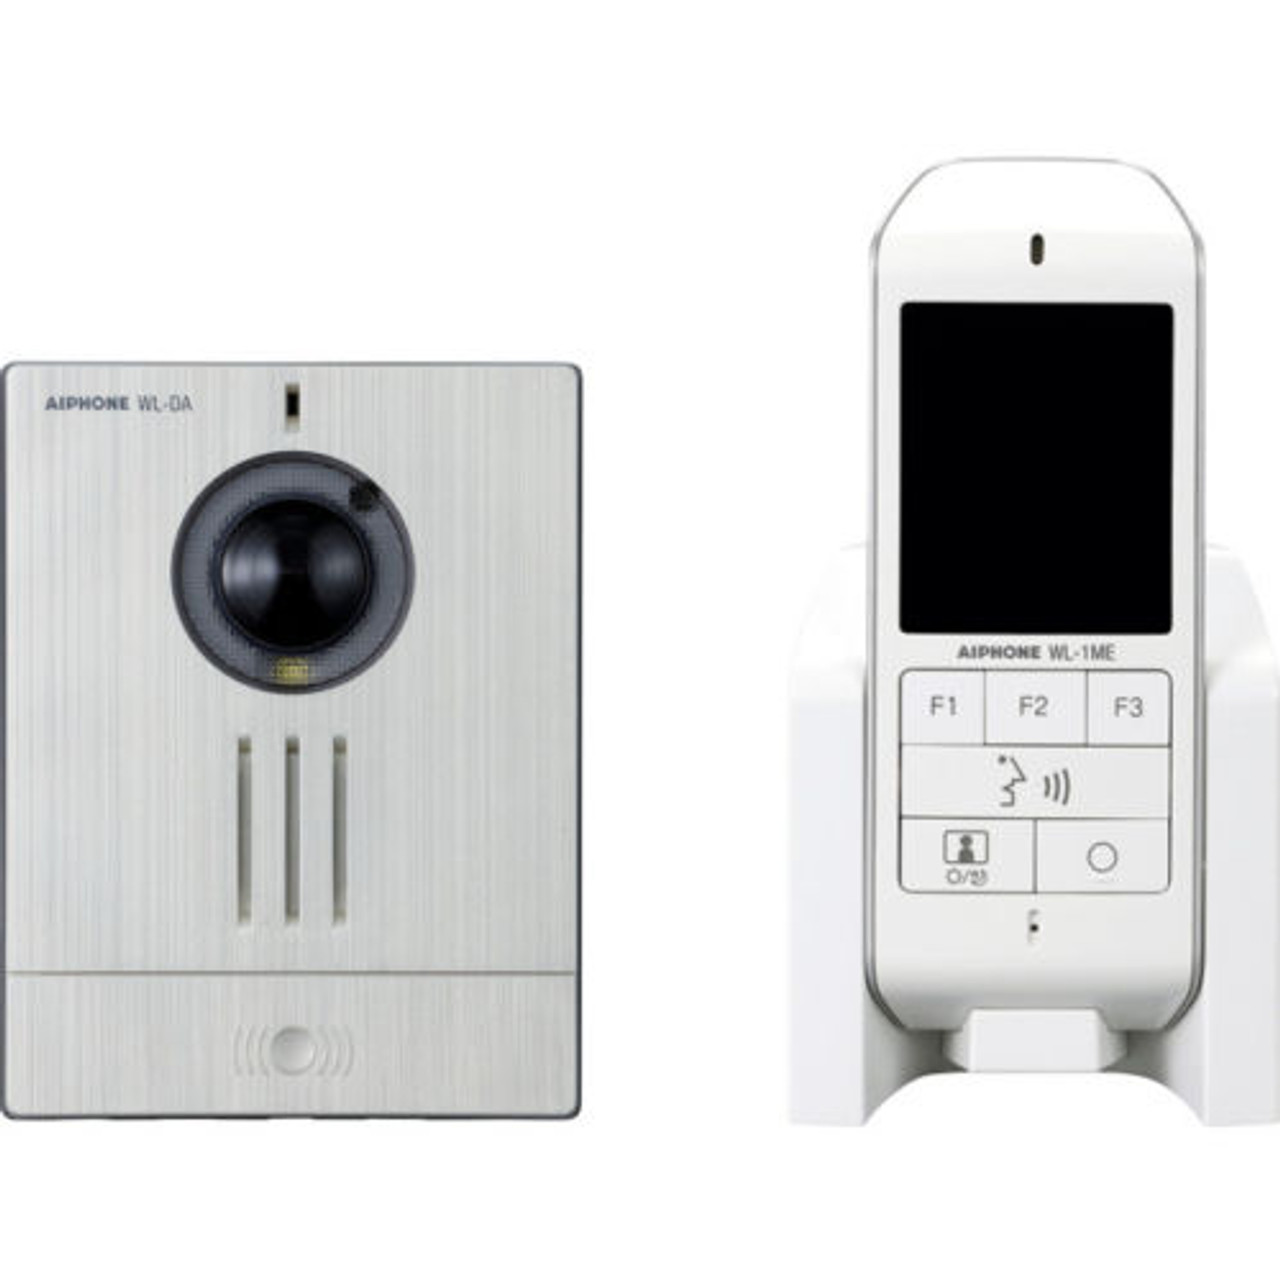 AIPHONE WL11 1.9GHZ WIRELESS VIDEO INTERCOM